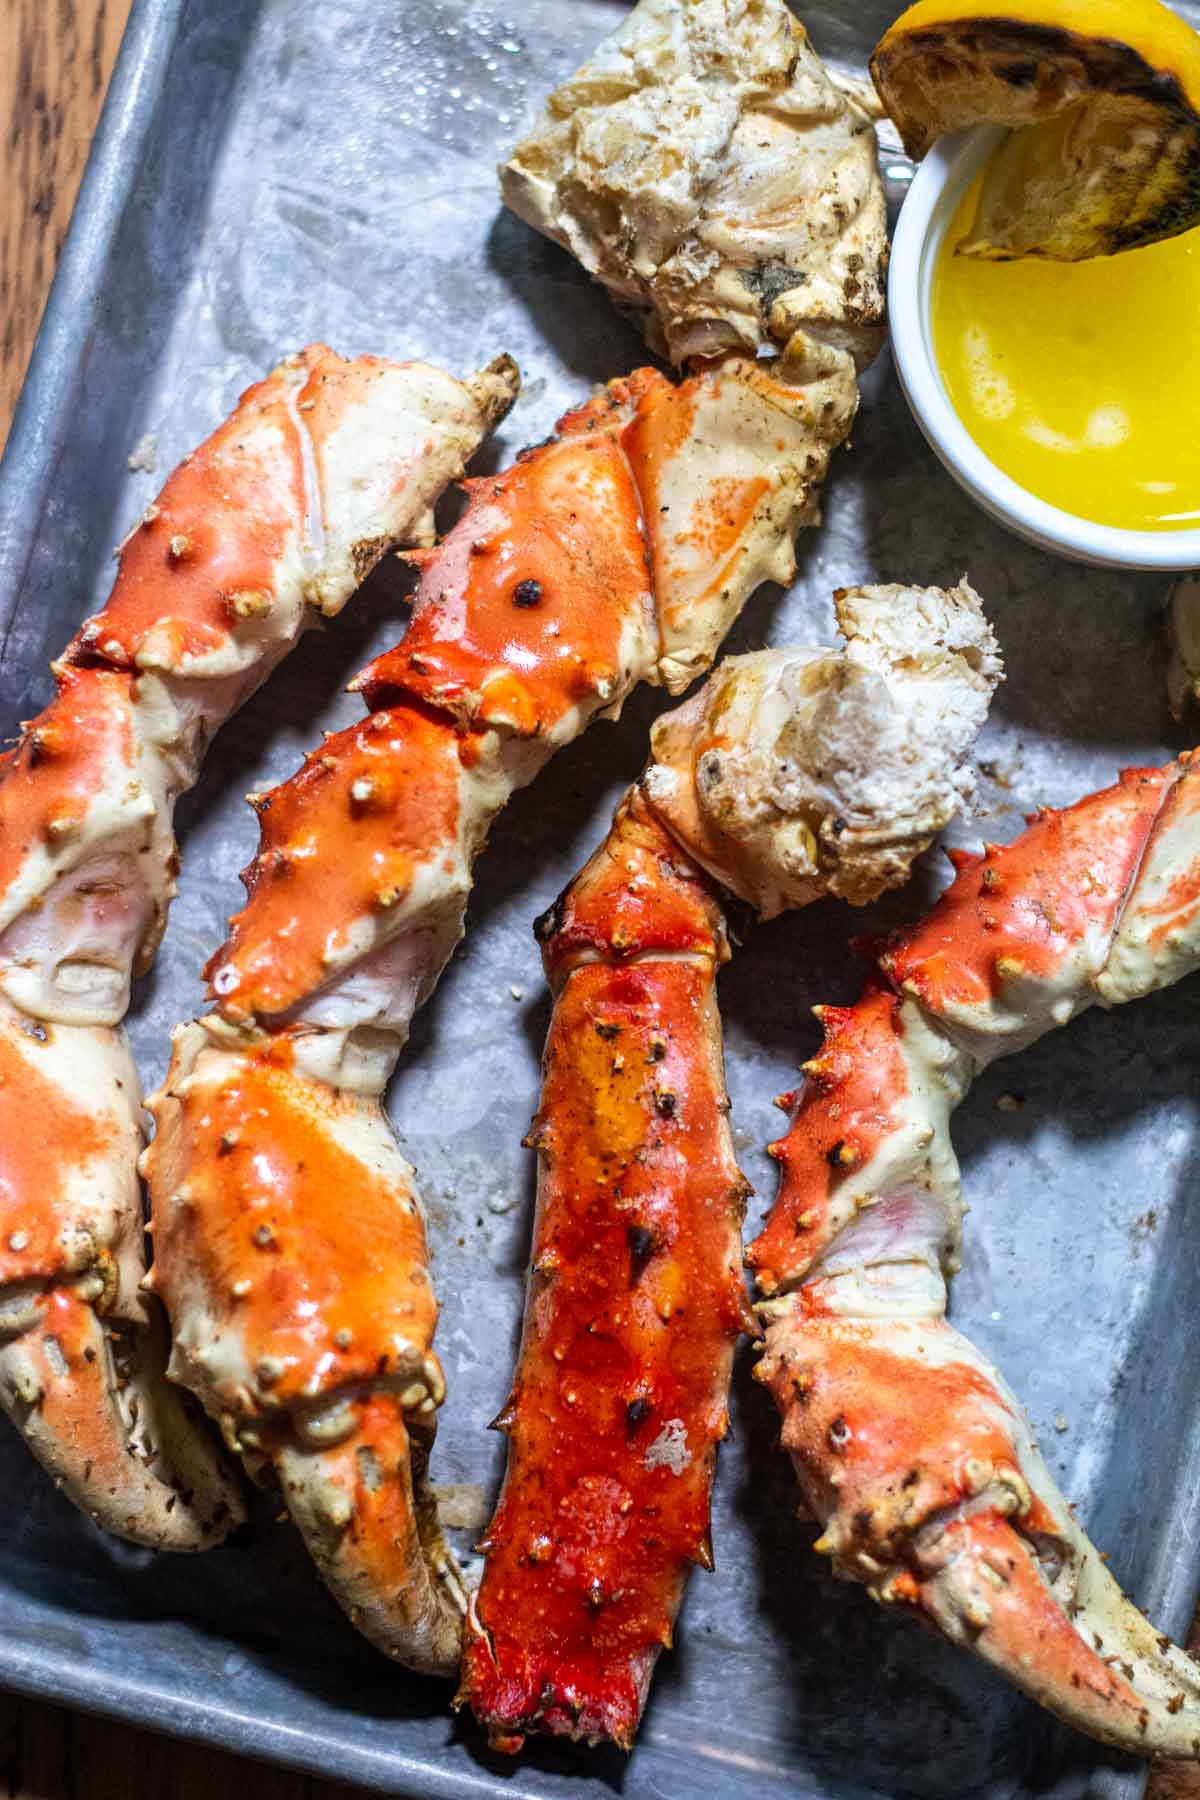 grilled crab legs on a serving tray and ready to be cracked open and dipped in butter.